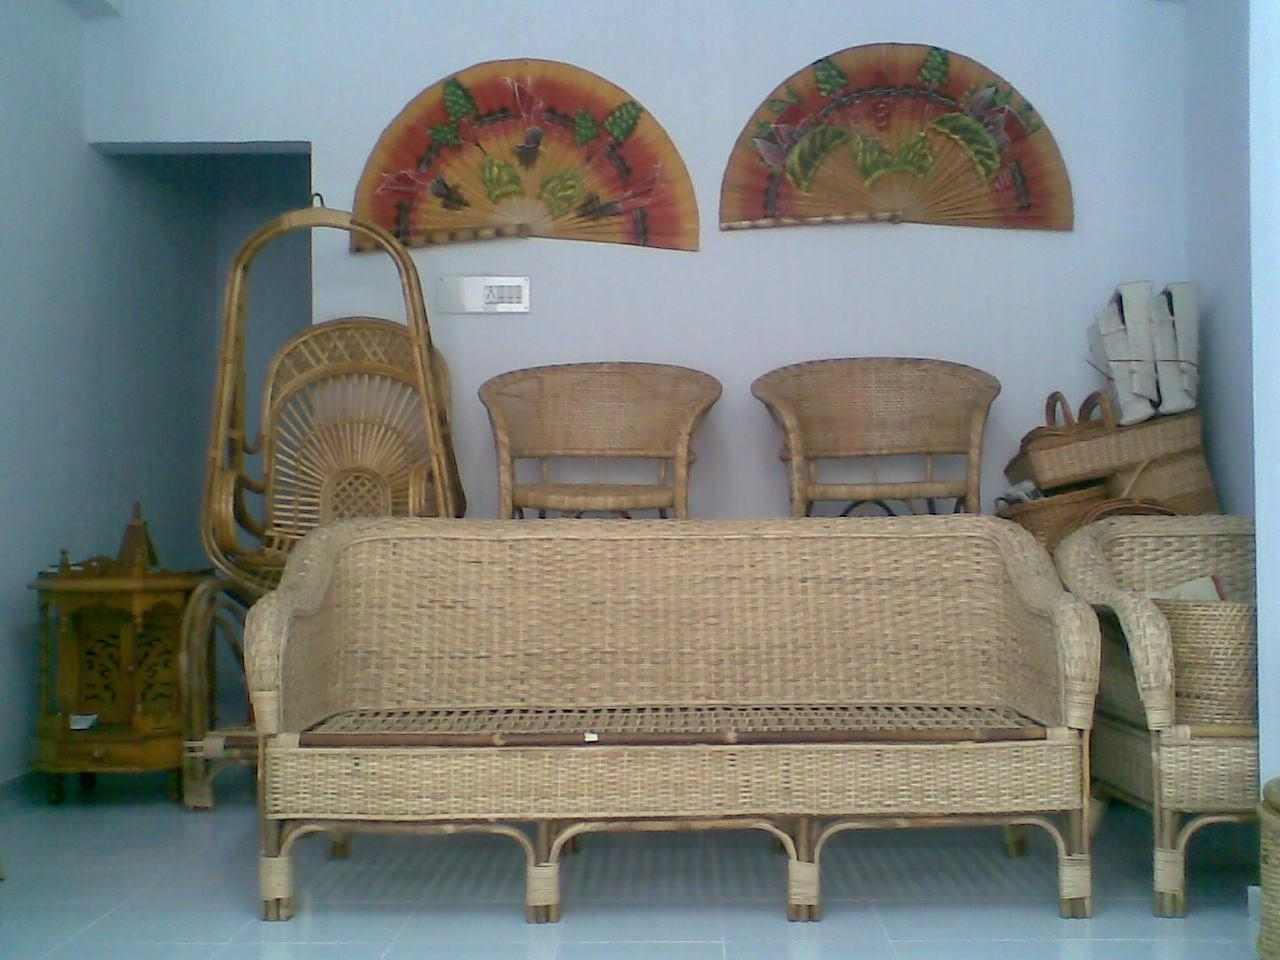 Cane Furniture Online Delhi | Bedroom And Living Room Image Intended For Ken Sofa Sets (Image 9 of 20)